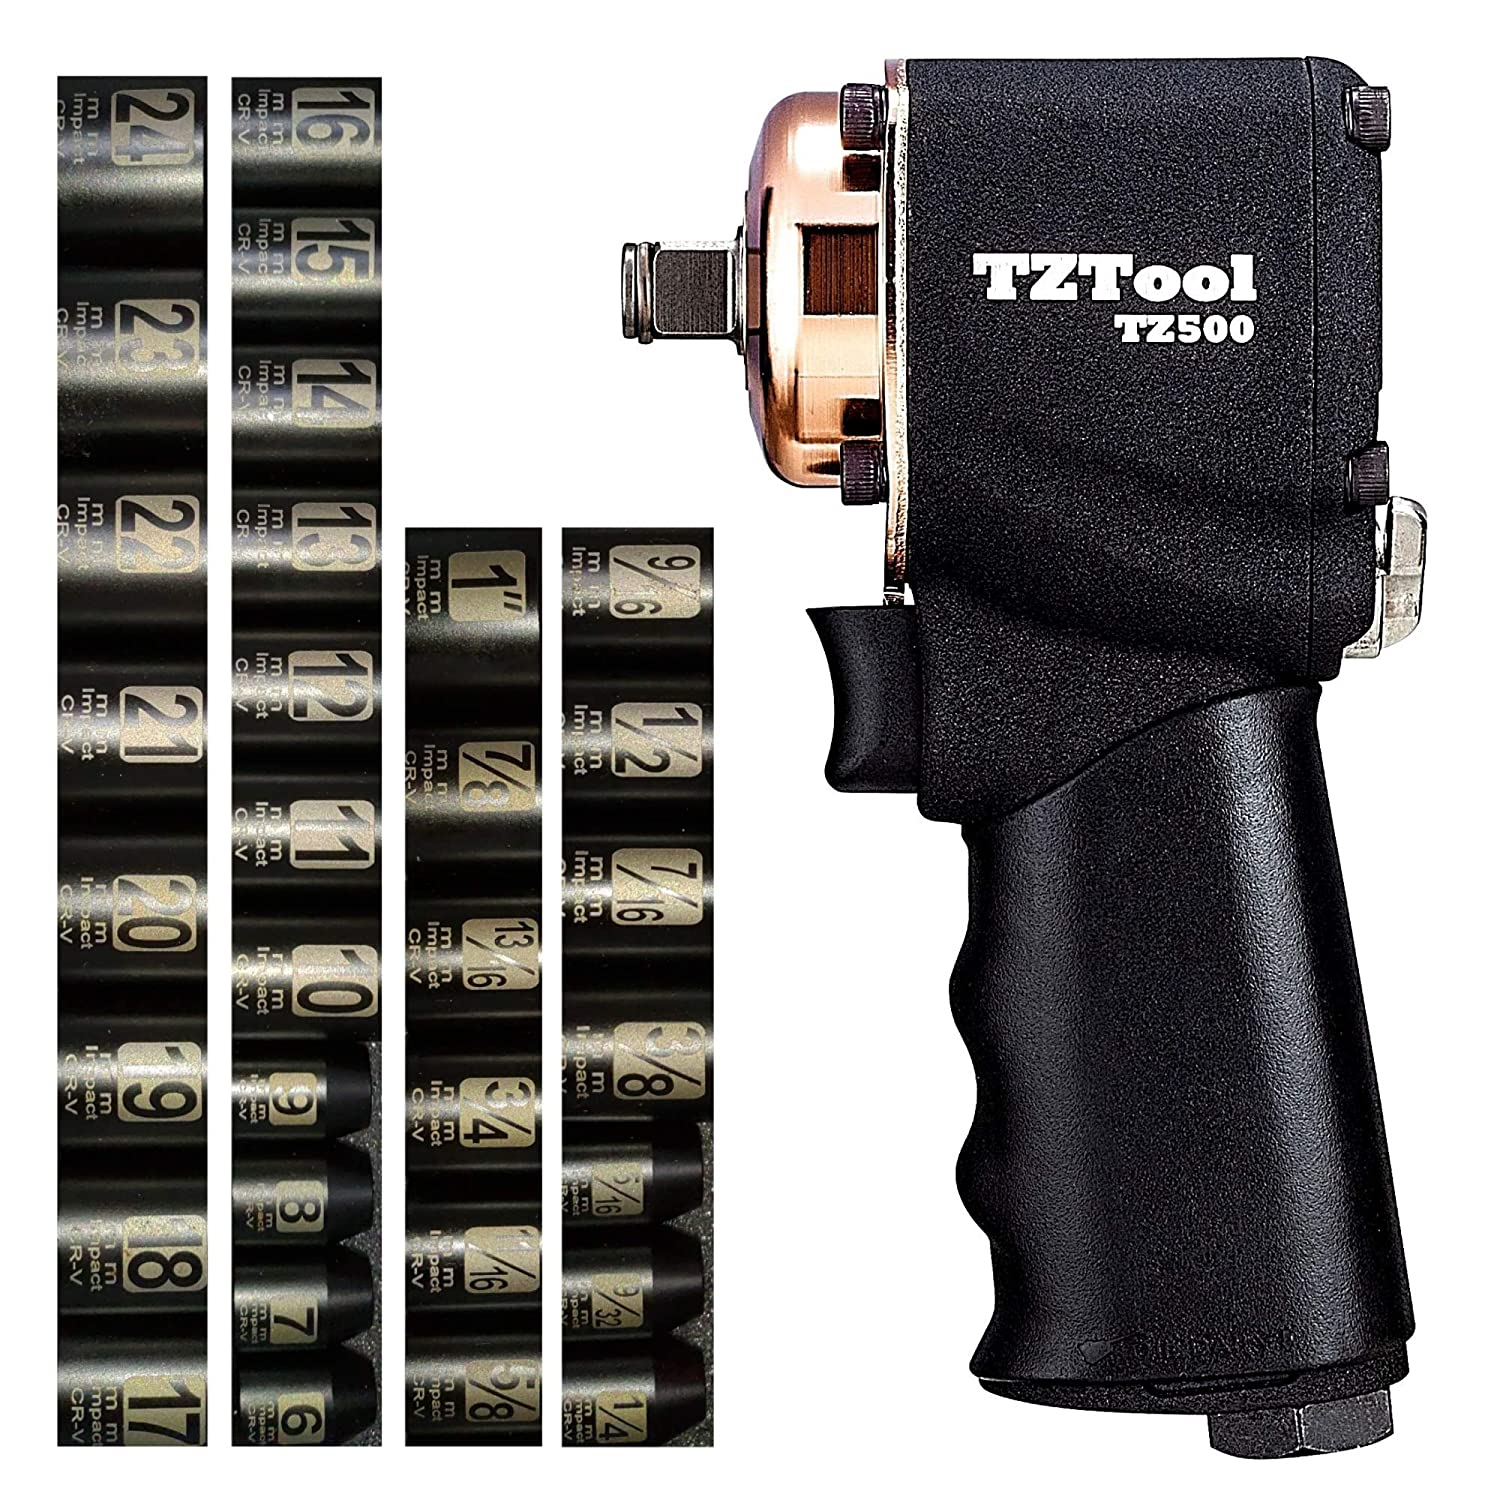 TZTool mini 1 2 impact wrench kit 34-PC , 1 2 3 8 Metric Inch super short sockets 3 8 Reducer swivel plug